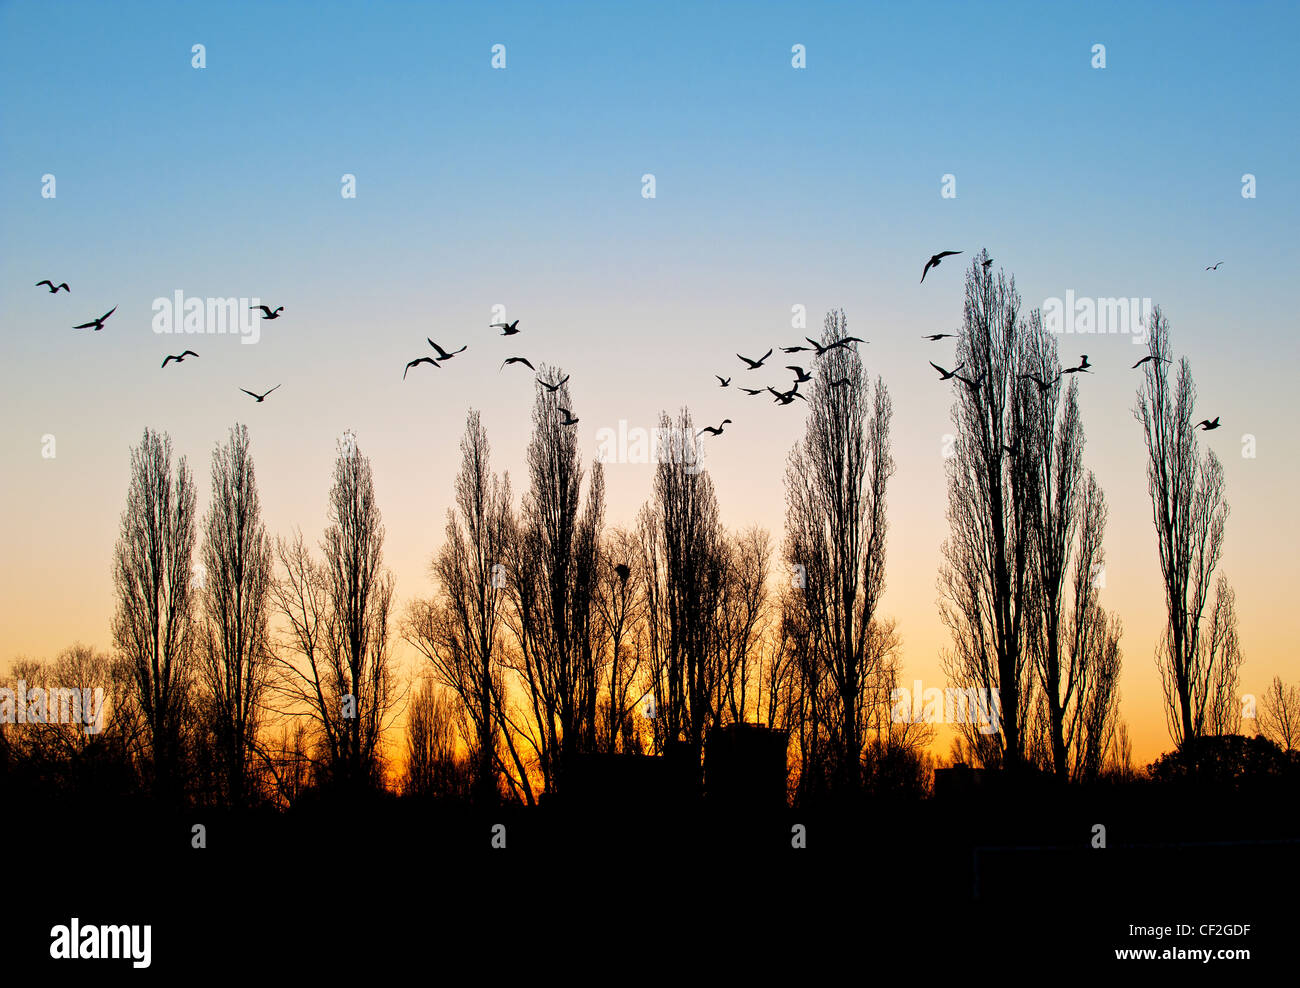 A flock of seagulls flying over trees as the sun rises. - Stock Image